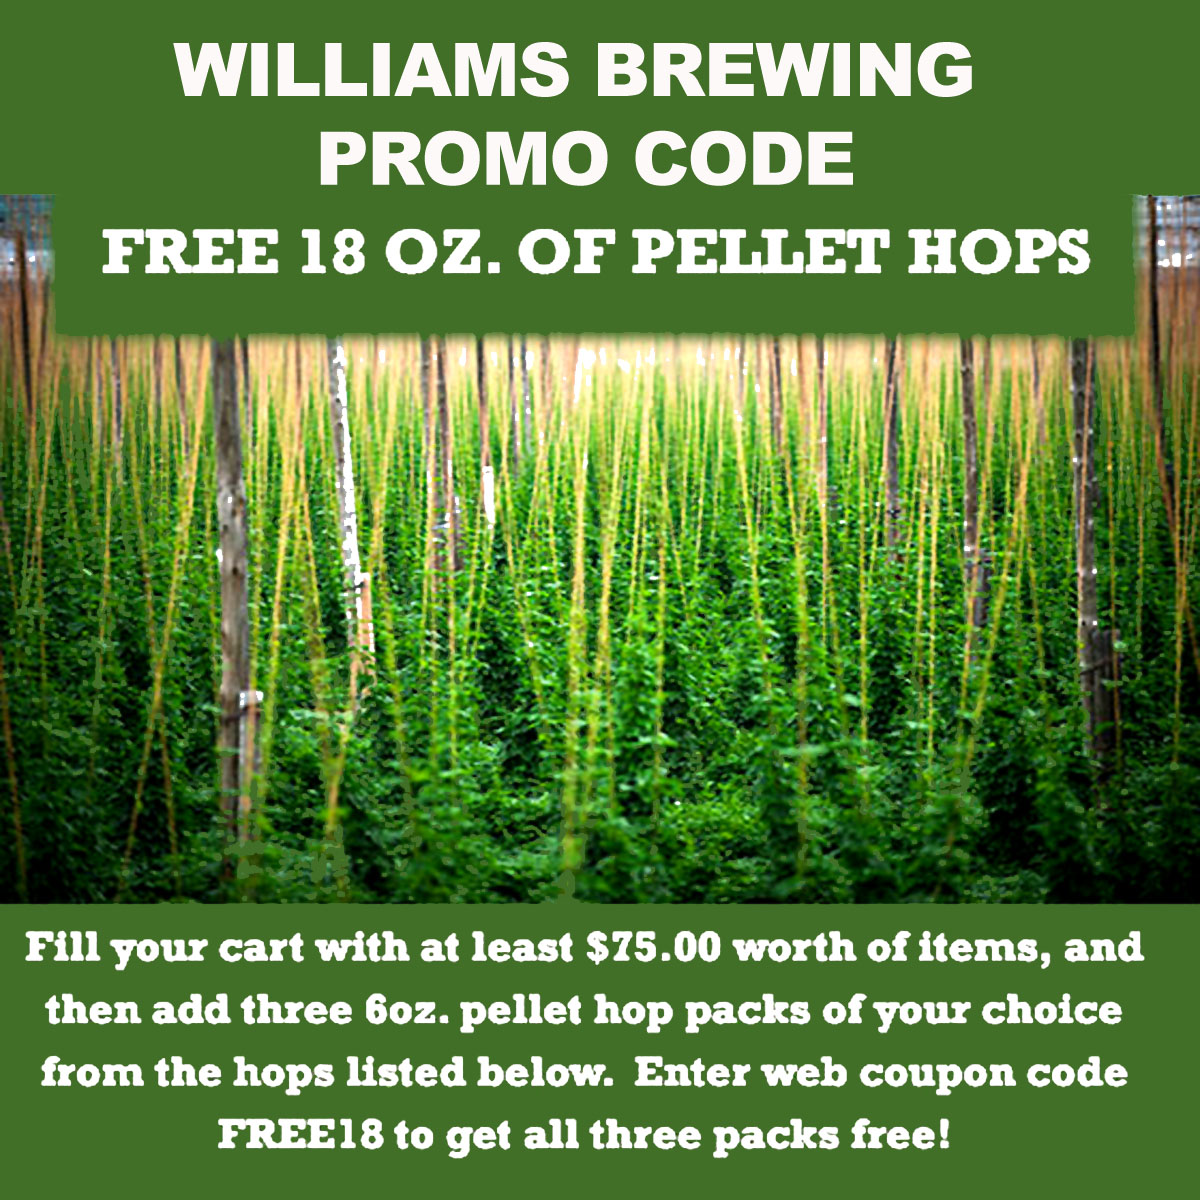 Williams Brewing Spend $75 or More and Get Free Hops with this WilliamsBrewing.com Promo Code Coupon Code